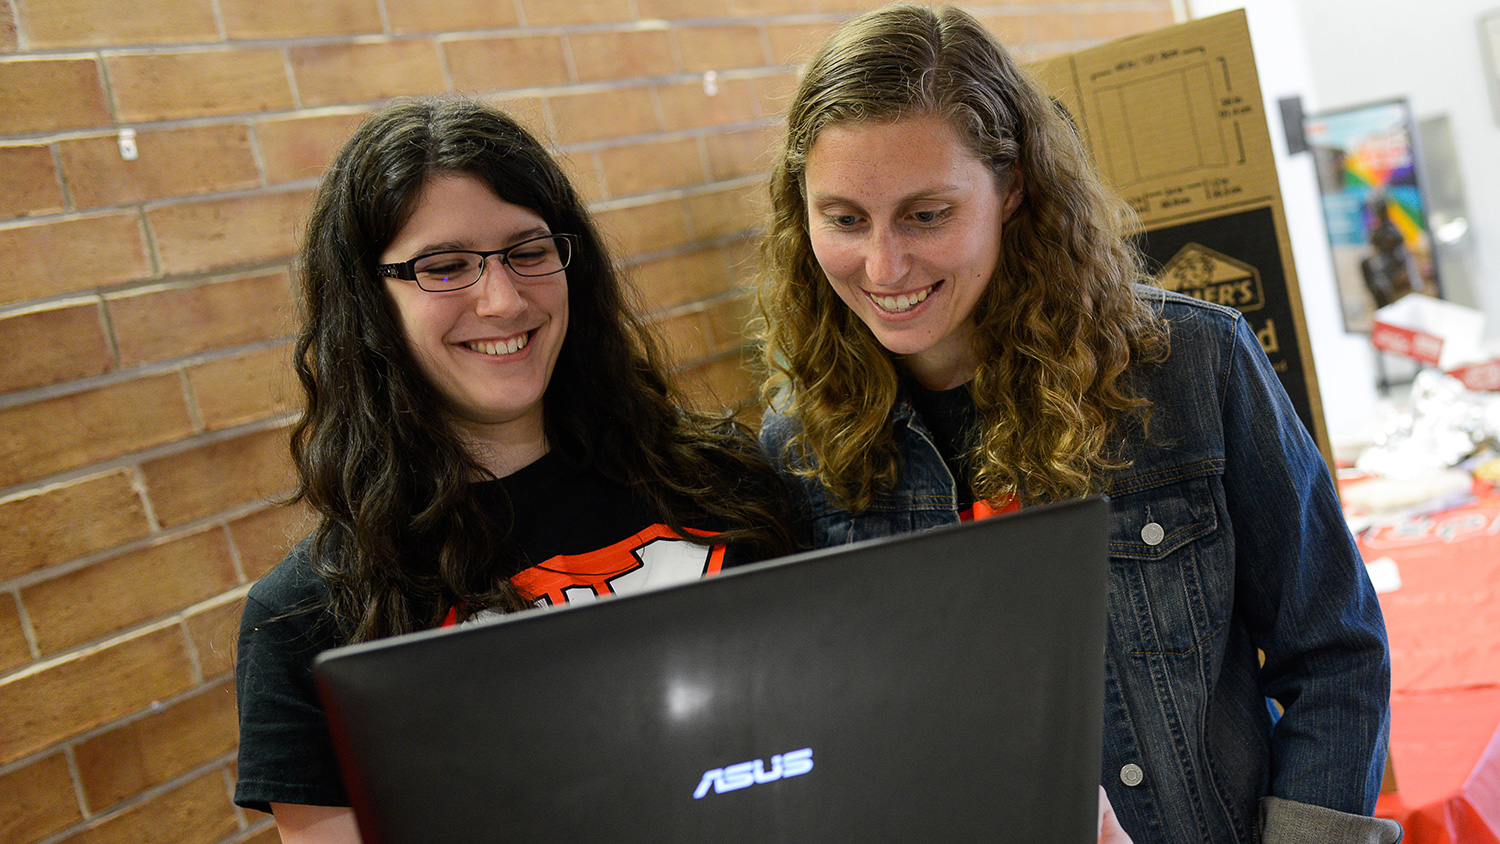 Two female math students look at a laptop